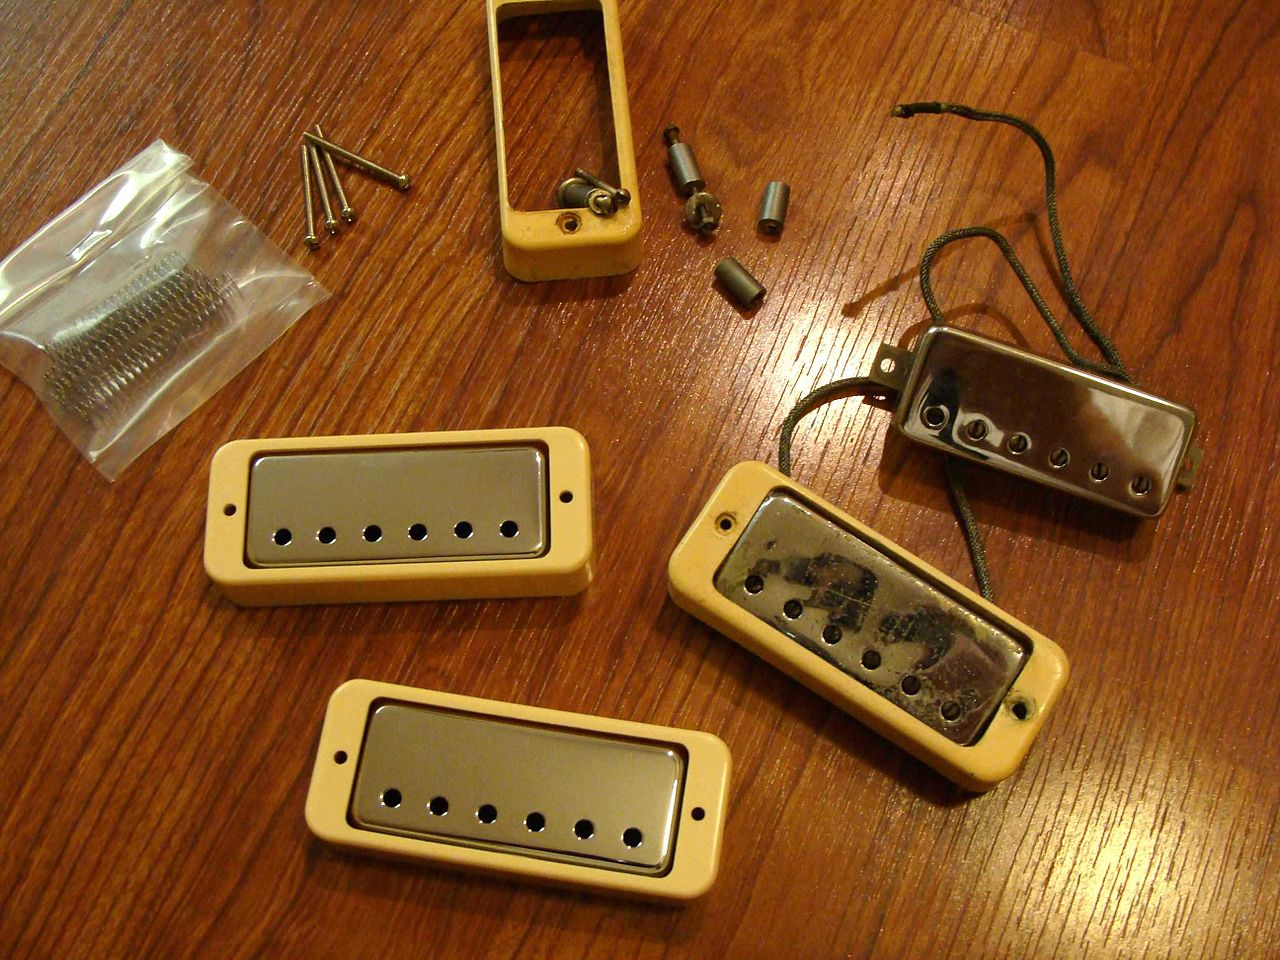 How To Mount Pickups In A Guitar Without Pickup Rings